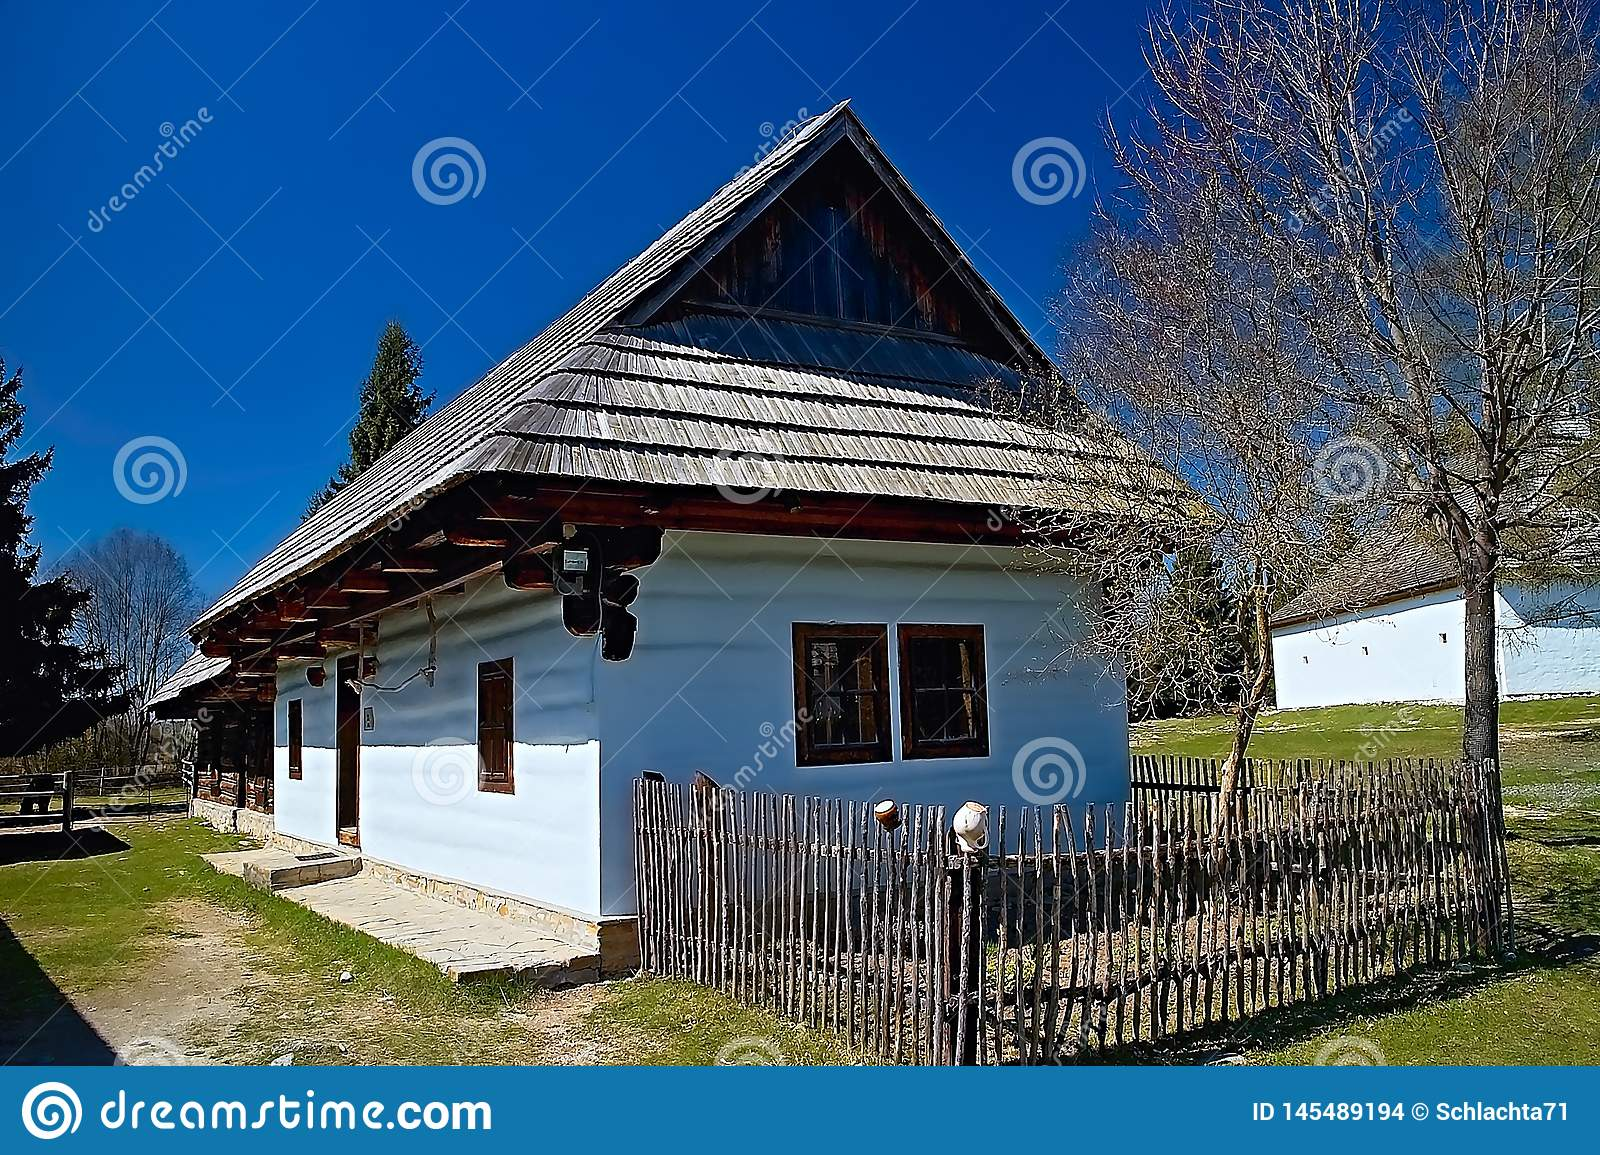 Museum of Liptov village in Pribylina, the youngest museum in nature in Slovakia